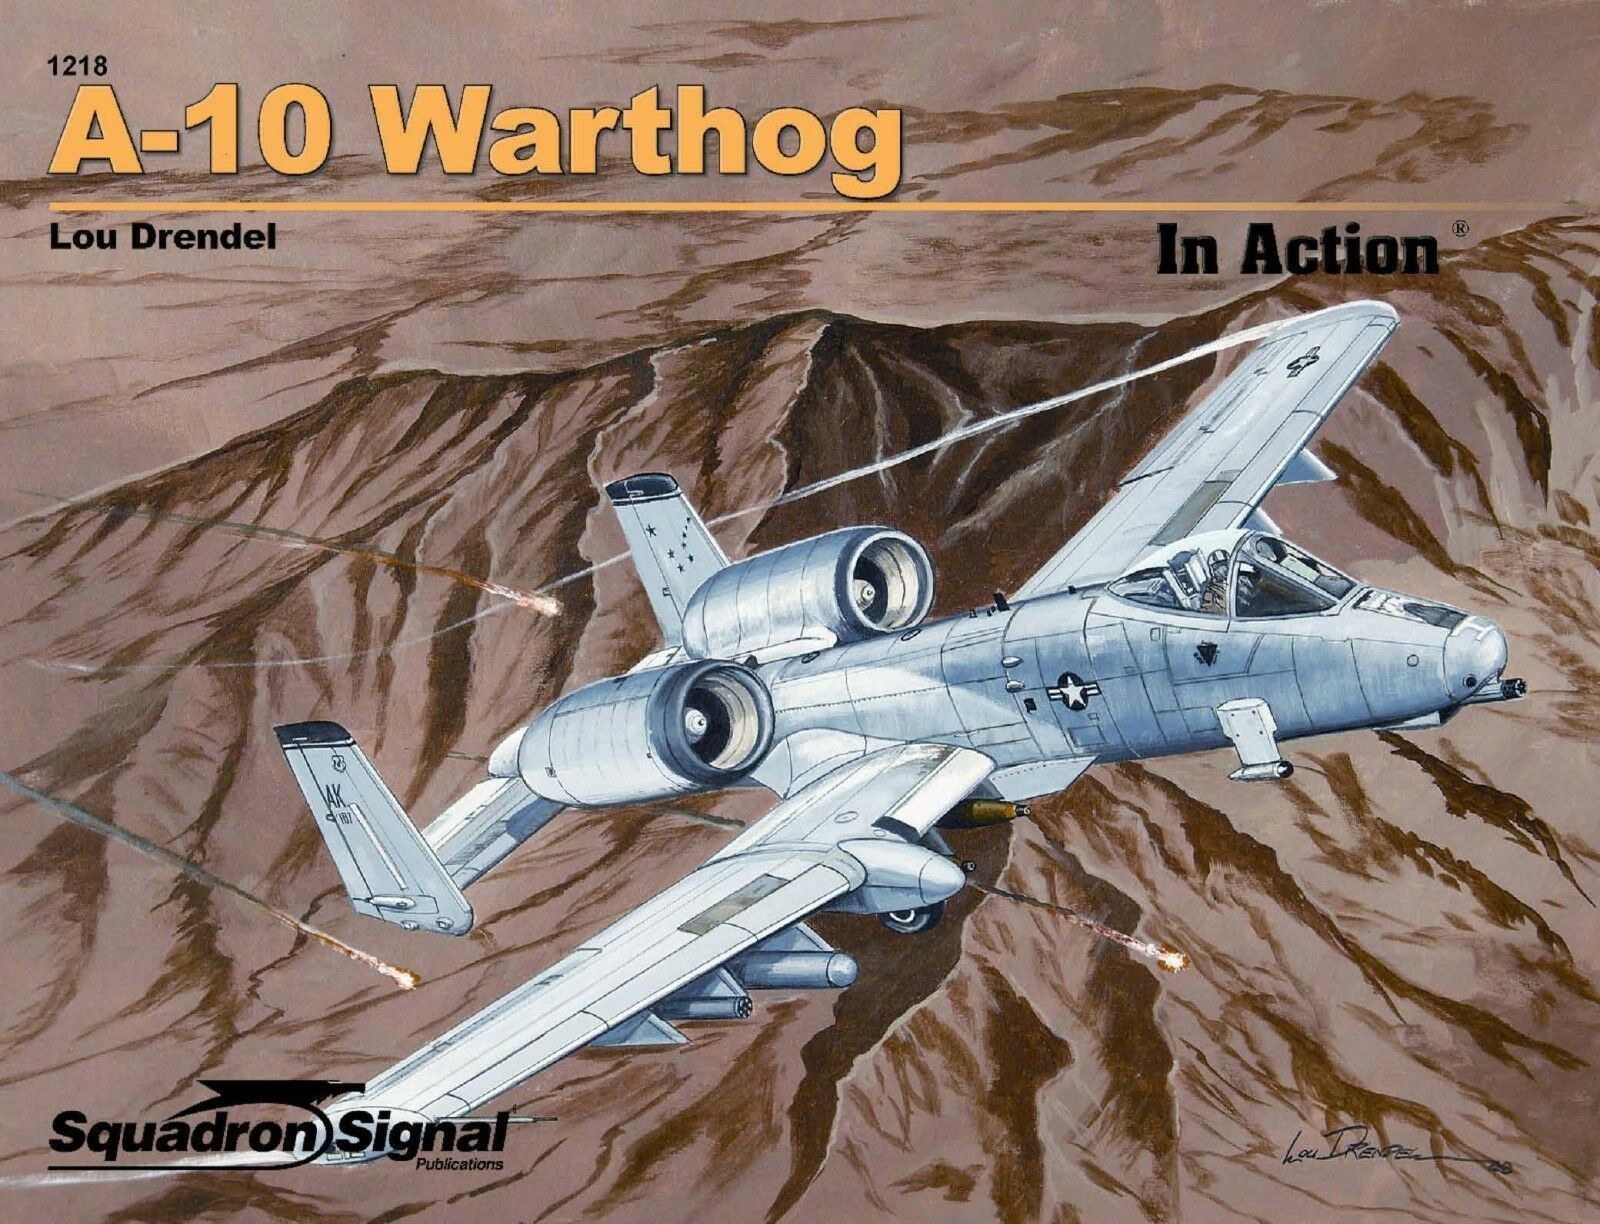 A-10 WARTHOG-SQUADRON SIGNAL IN ACTION Couleur SERIES N.1218-BY LOU DRENDEL -RARE